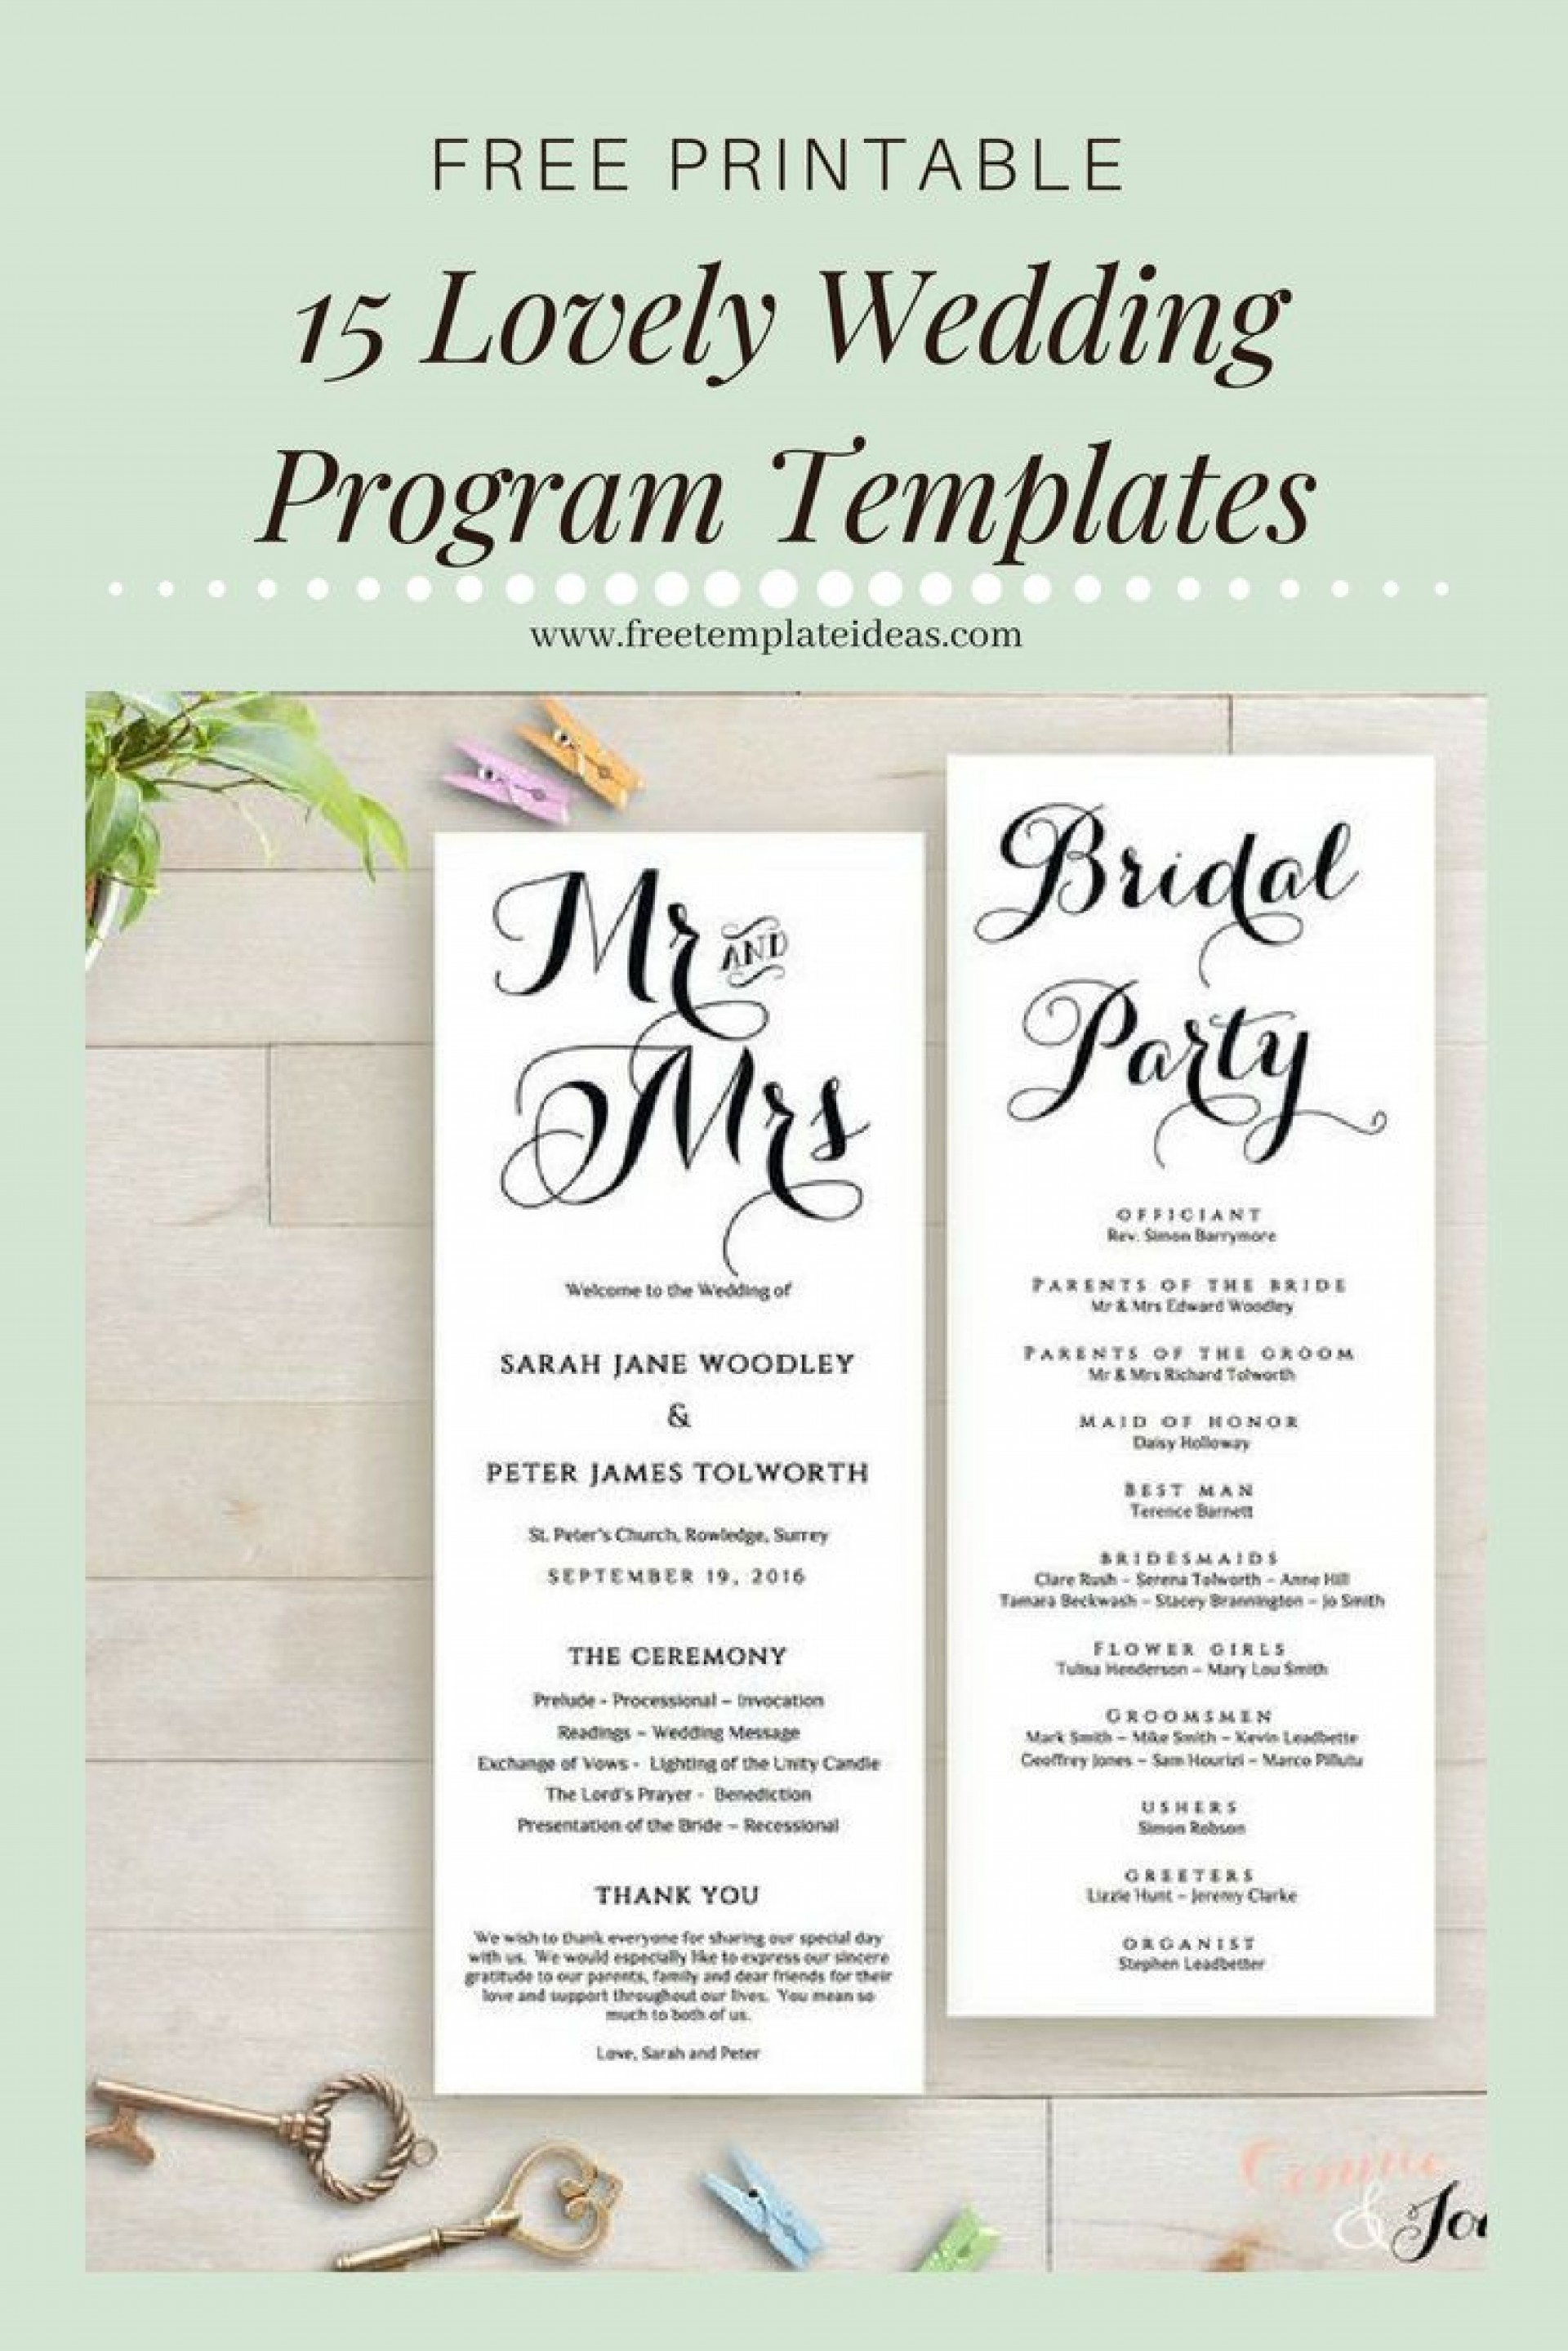 007 Magnificent Free Downloadable Wedding Program Template Sample  Templates That Can Be Printed Printable Fall Reception1920